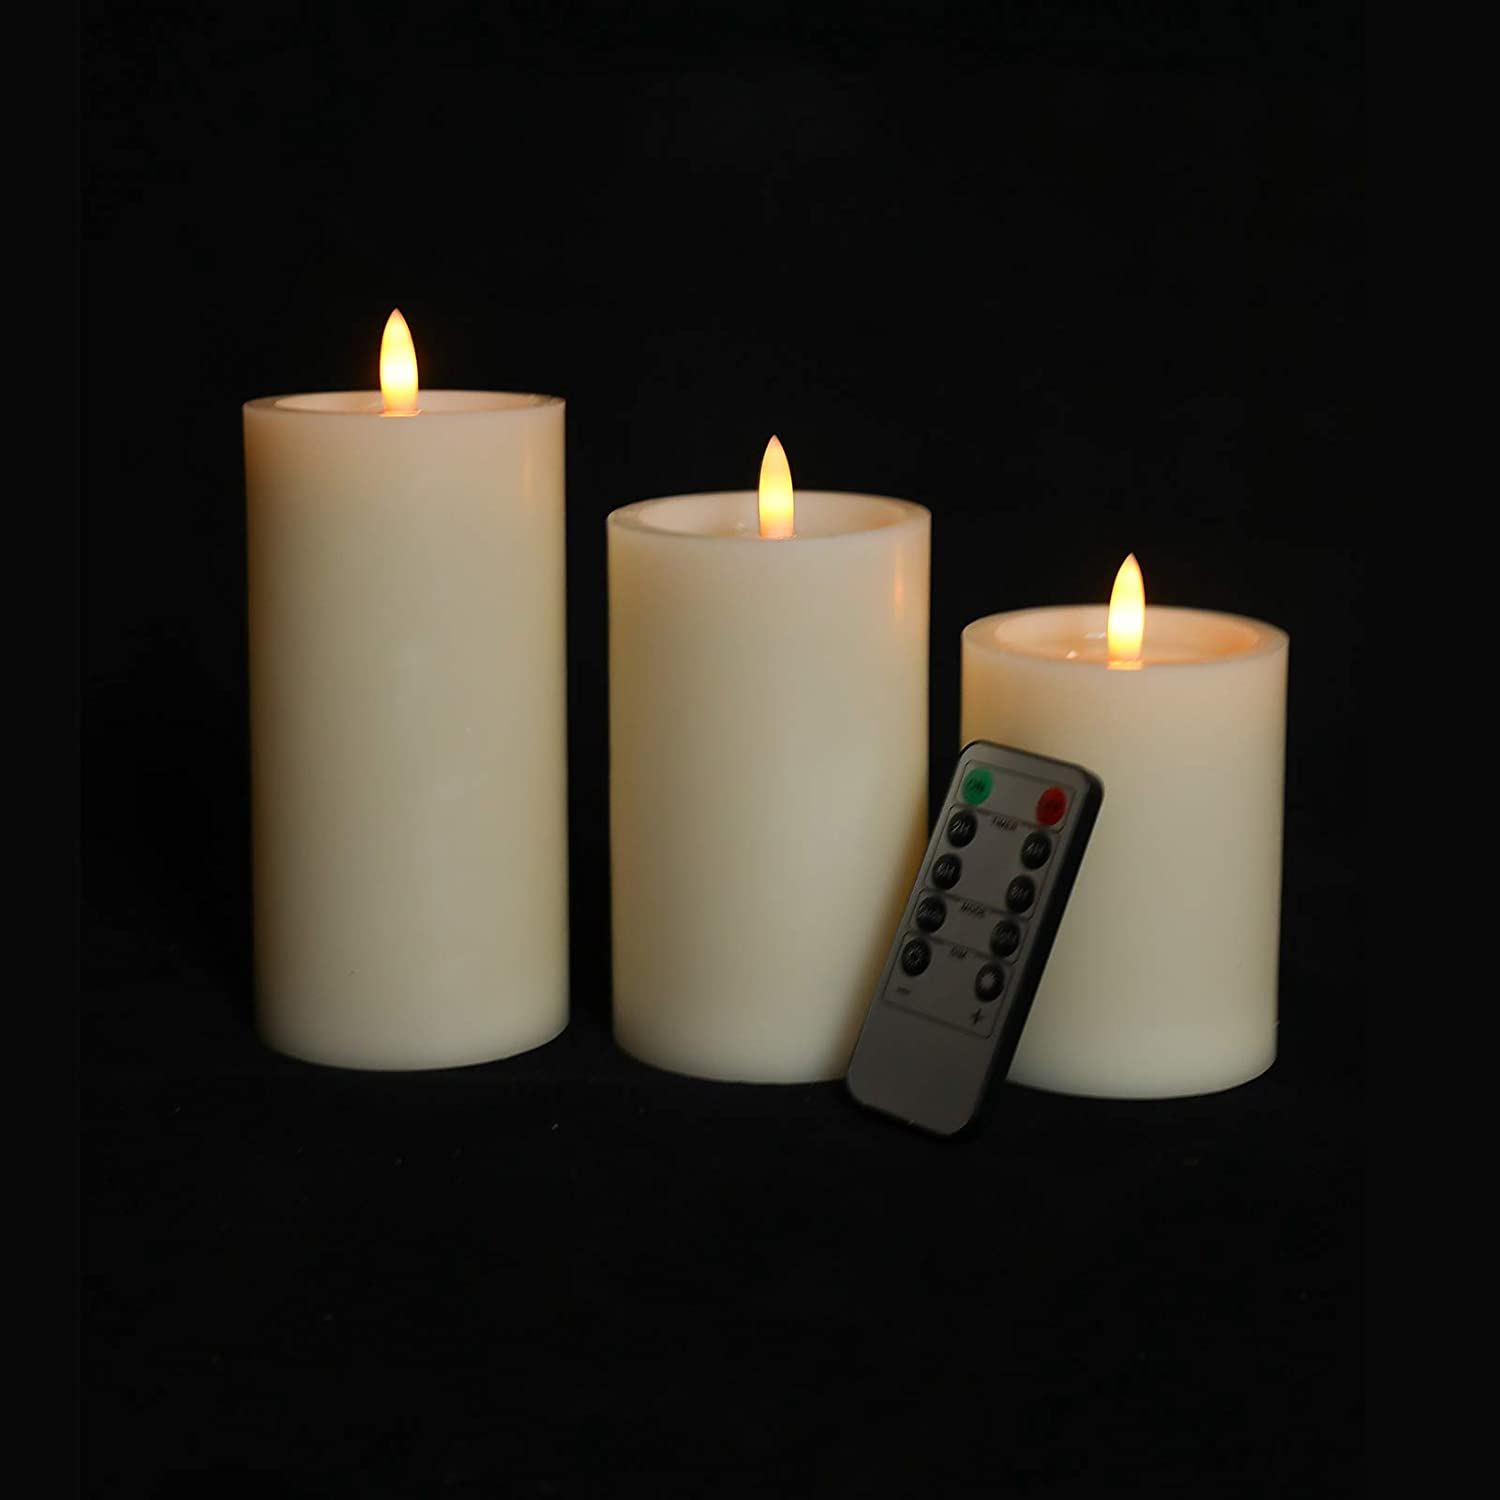 Evenice Flameless Candles Flickering Light Pillar Candles Real Smooth Wax for Gifts and Decoration,Pack of 2,Grey